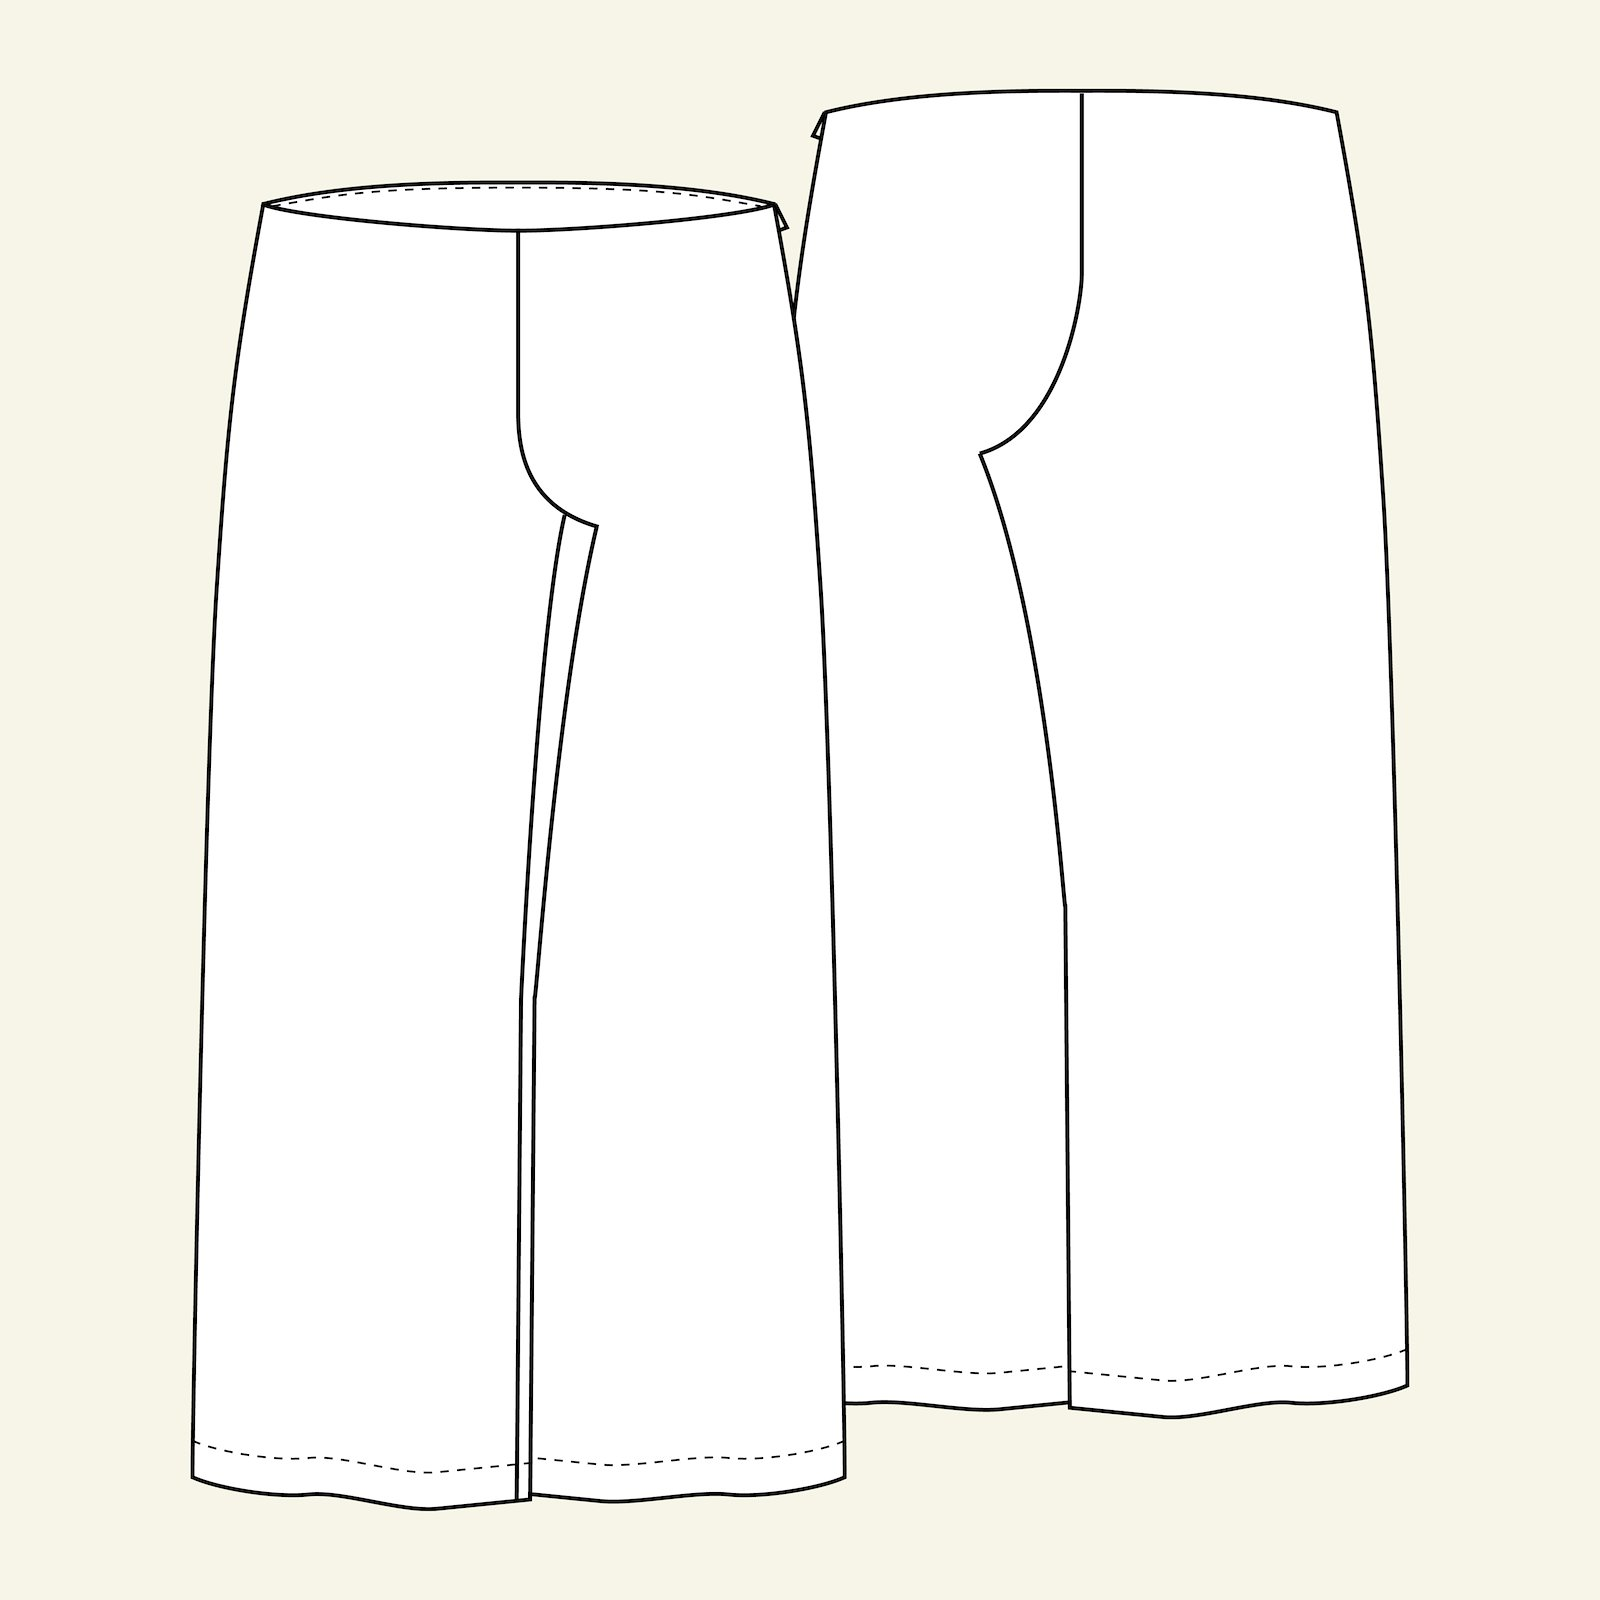 Trousers, 46/18 p20047_pack